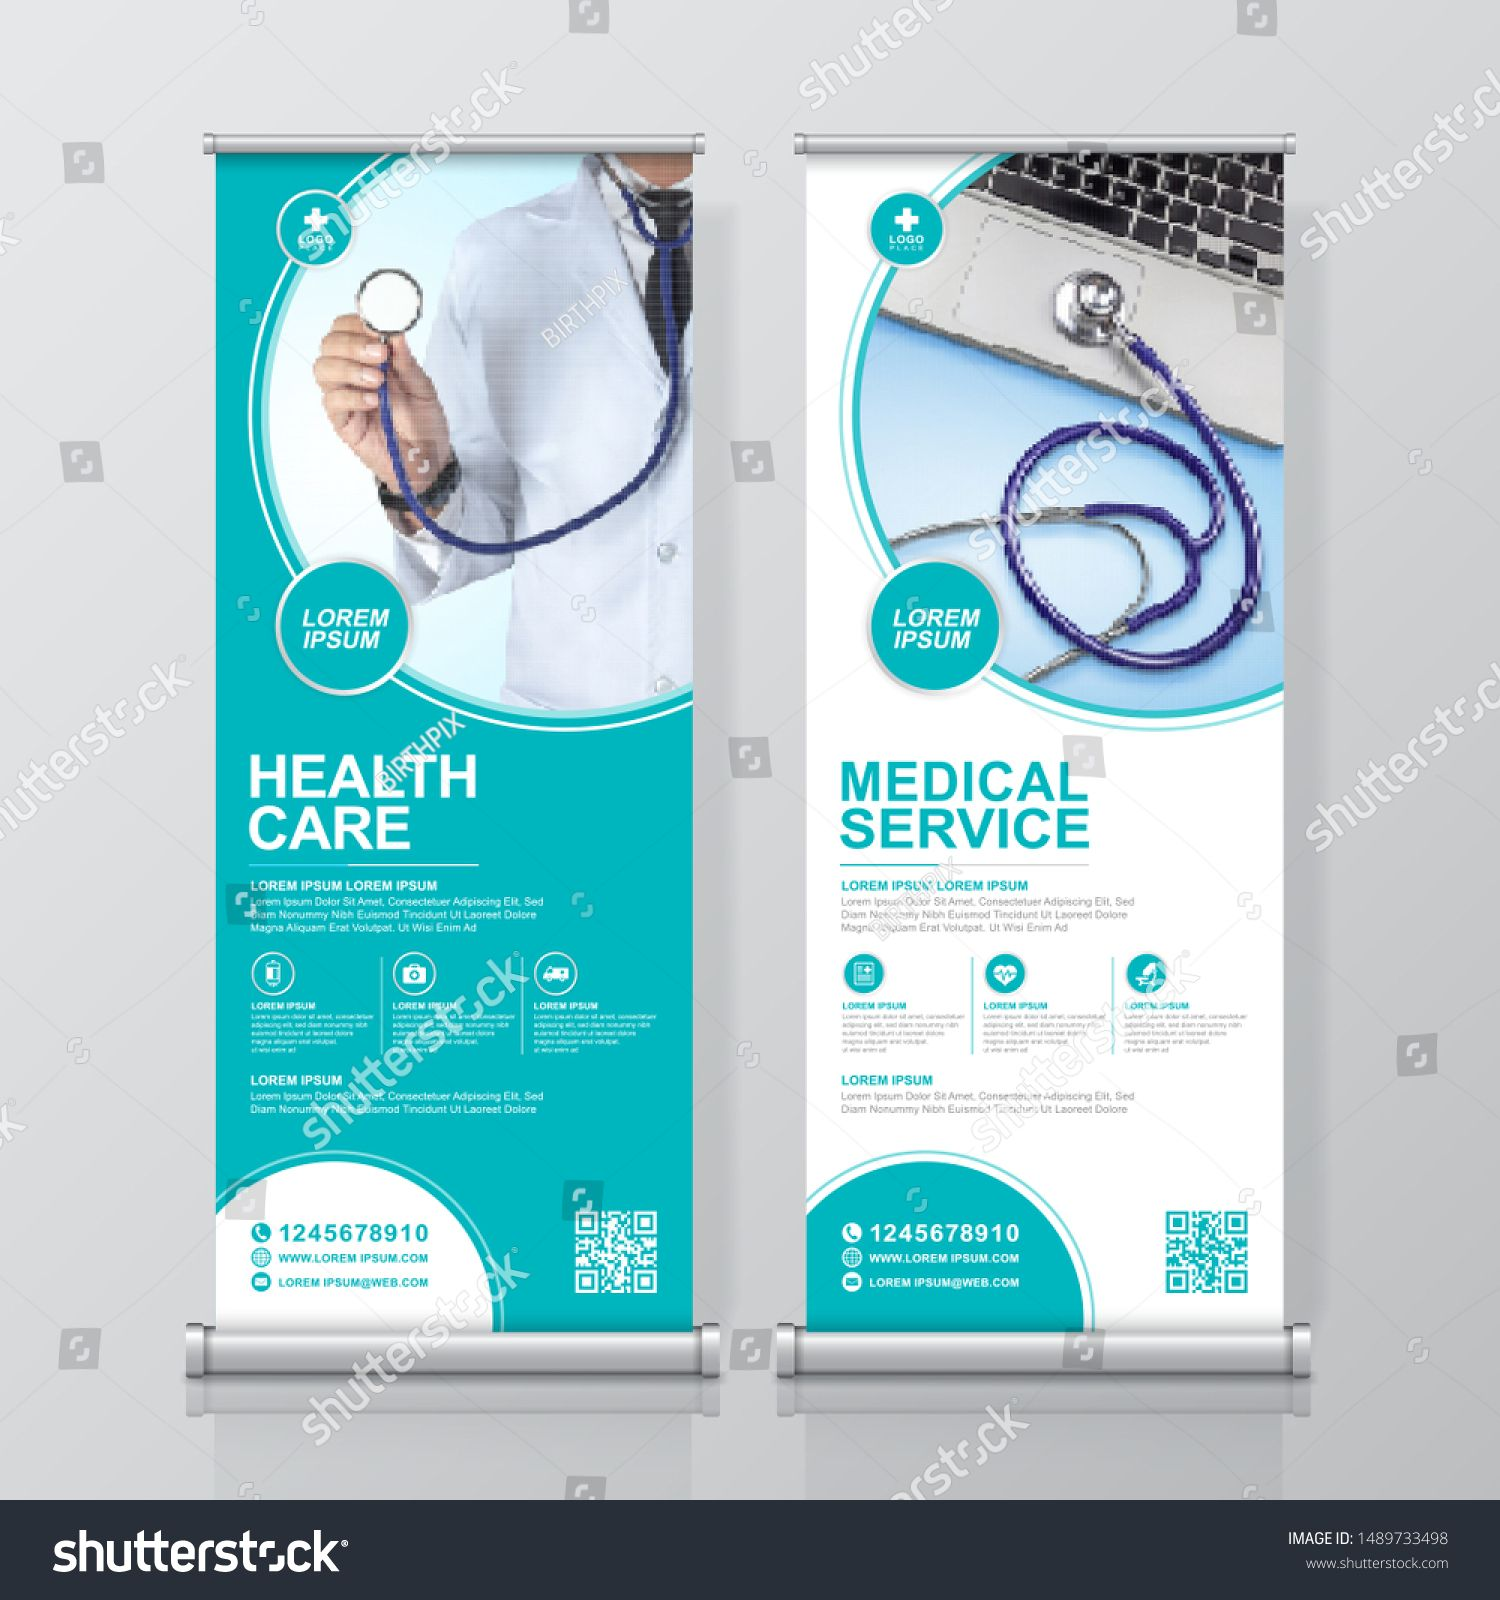 Healthcare And Medical And Flat Icons Roll Up Design Standee And